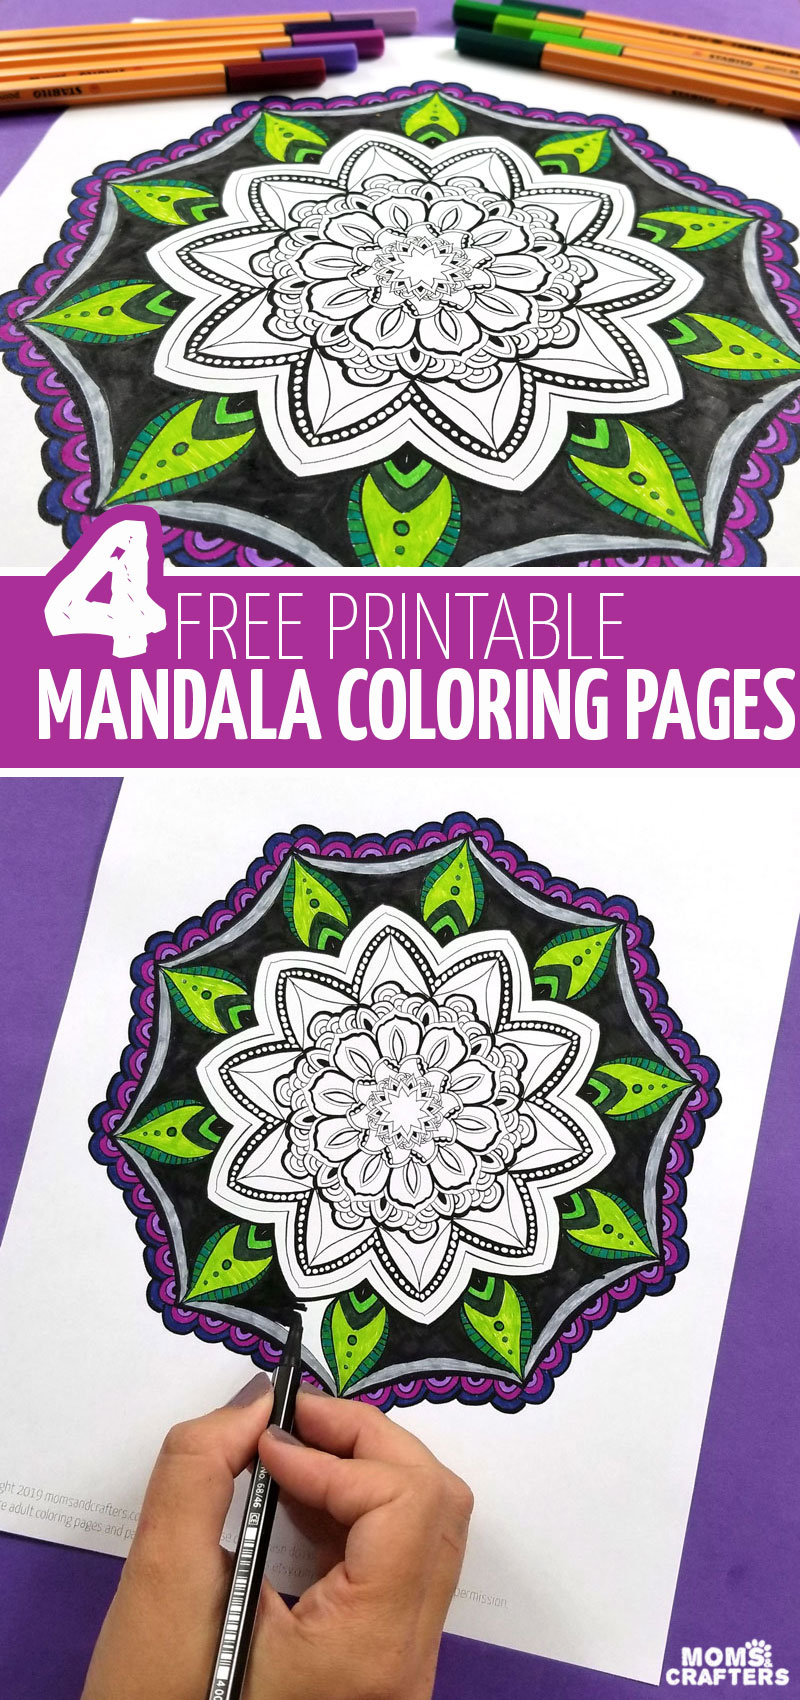 4 free printable mandala coloring pages for adults, teens, and tweens! Try some mindful, stress-reducing, relaxing colouring for grown-ups